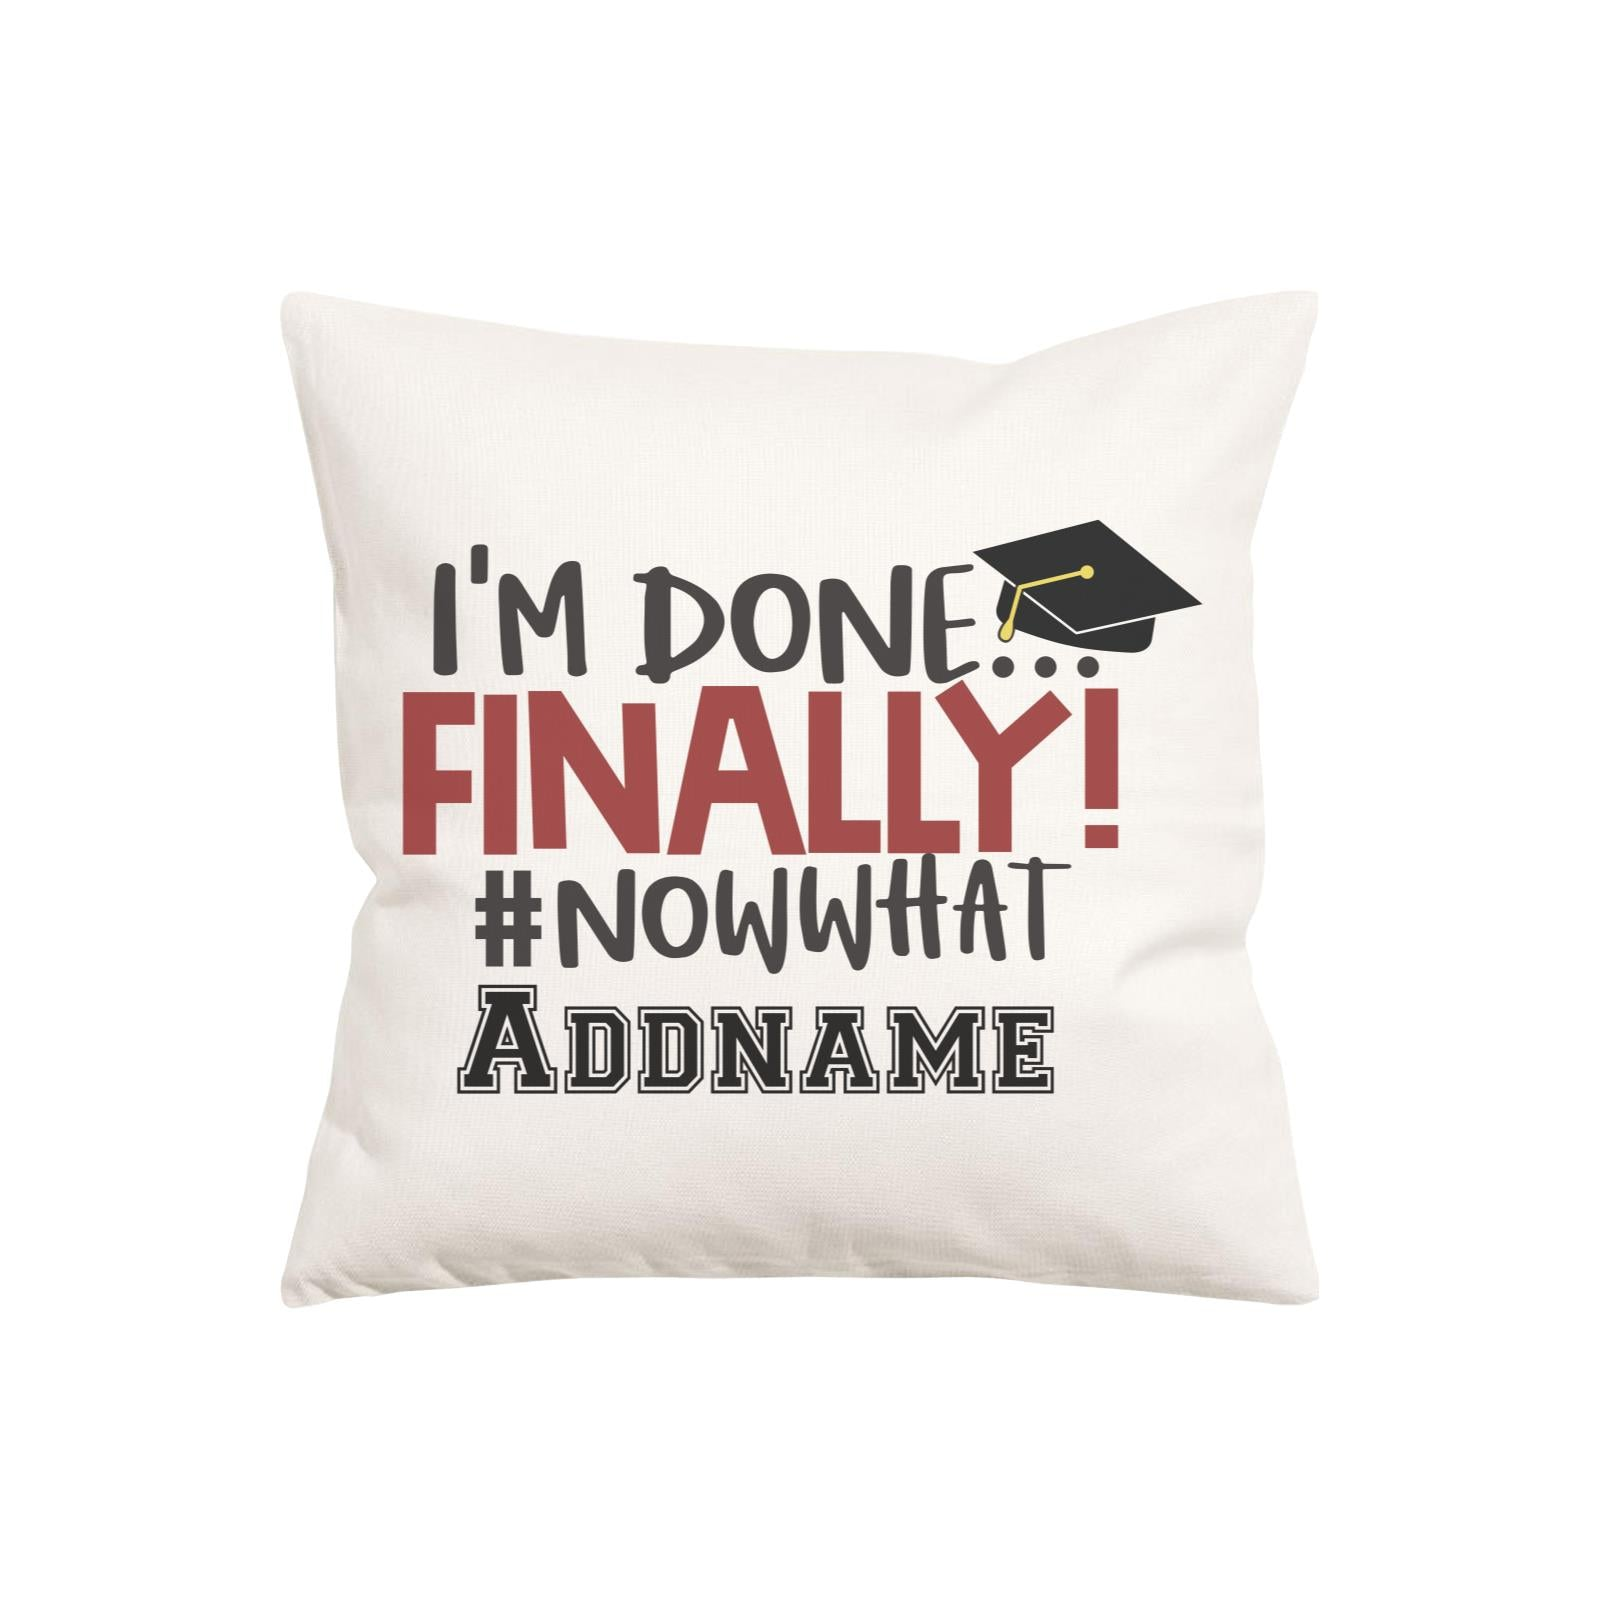 Graduation Series I'm Done, Finally! #Now What Pillow Cushion Cover with Inner Cushion